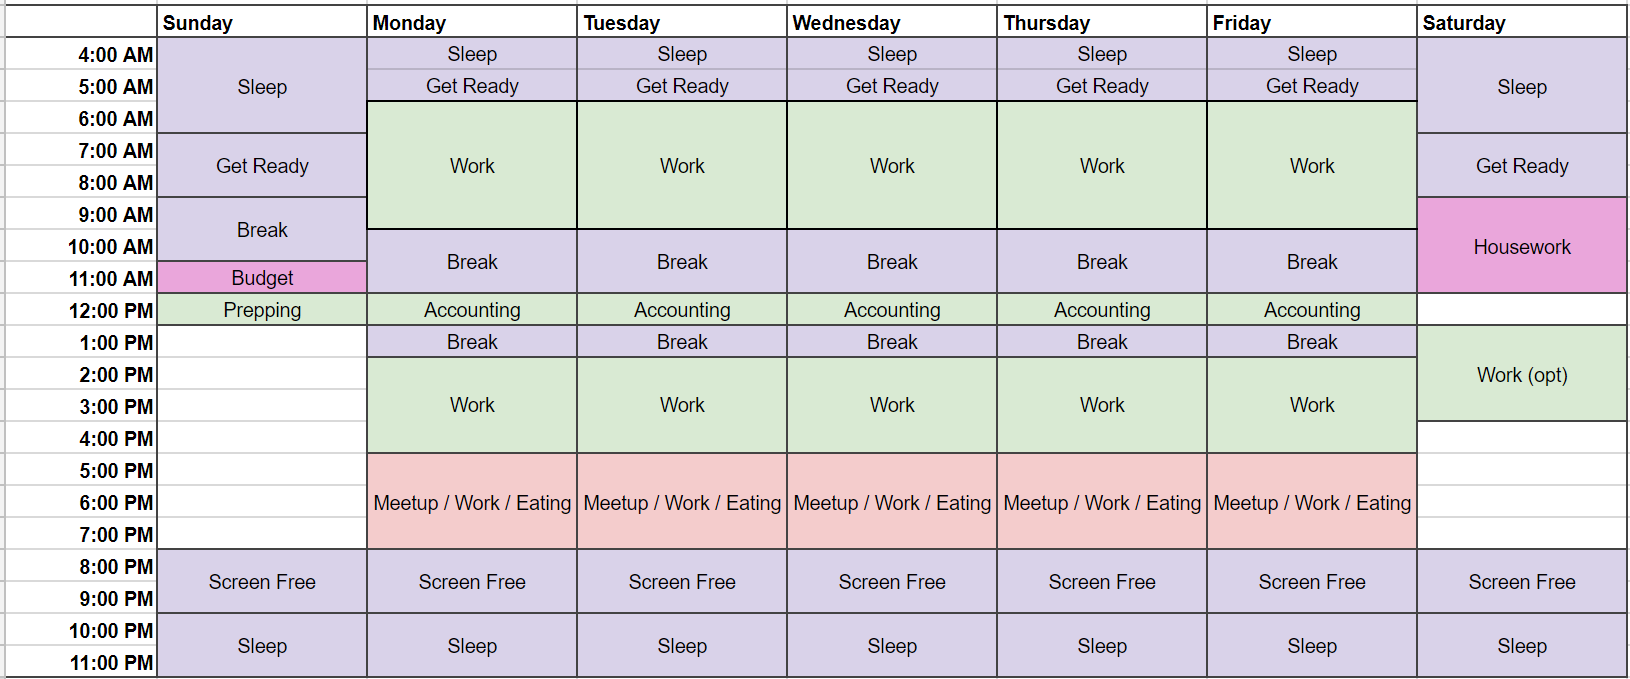 Spreadsheet I use for planning schedule, with columns for each day of the week and rows for each hour of the day.